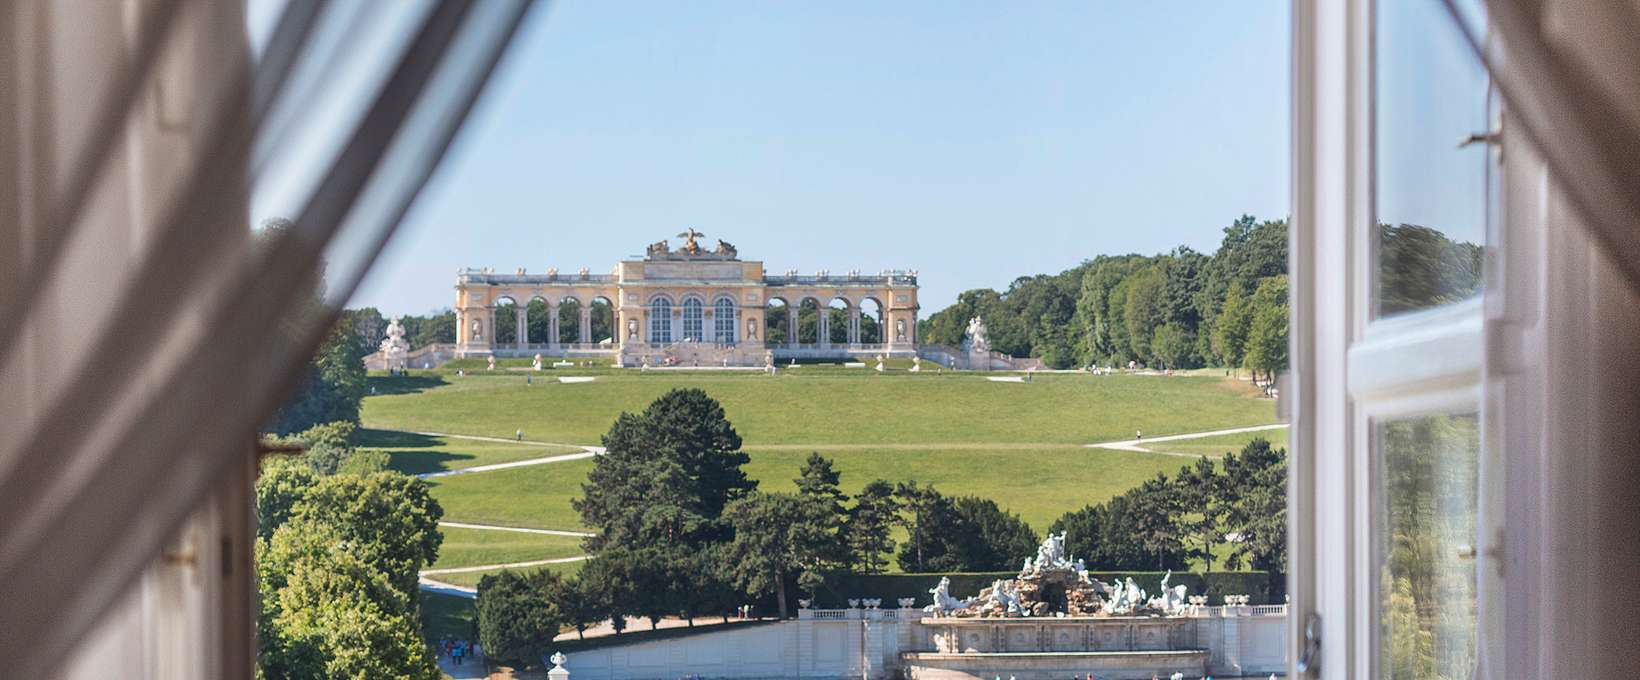 Window view to the Gloriette | Schloss Schönbrunn Grand Suite in Vienna